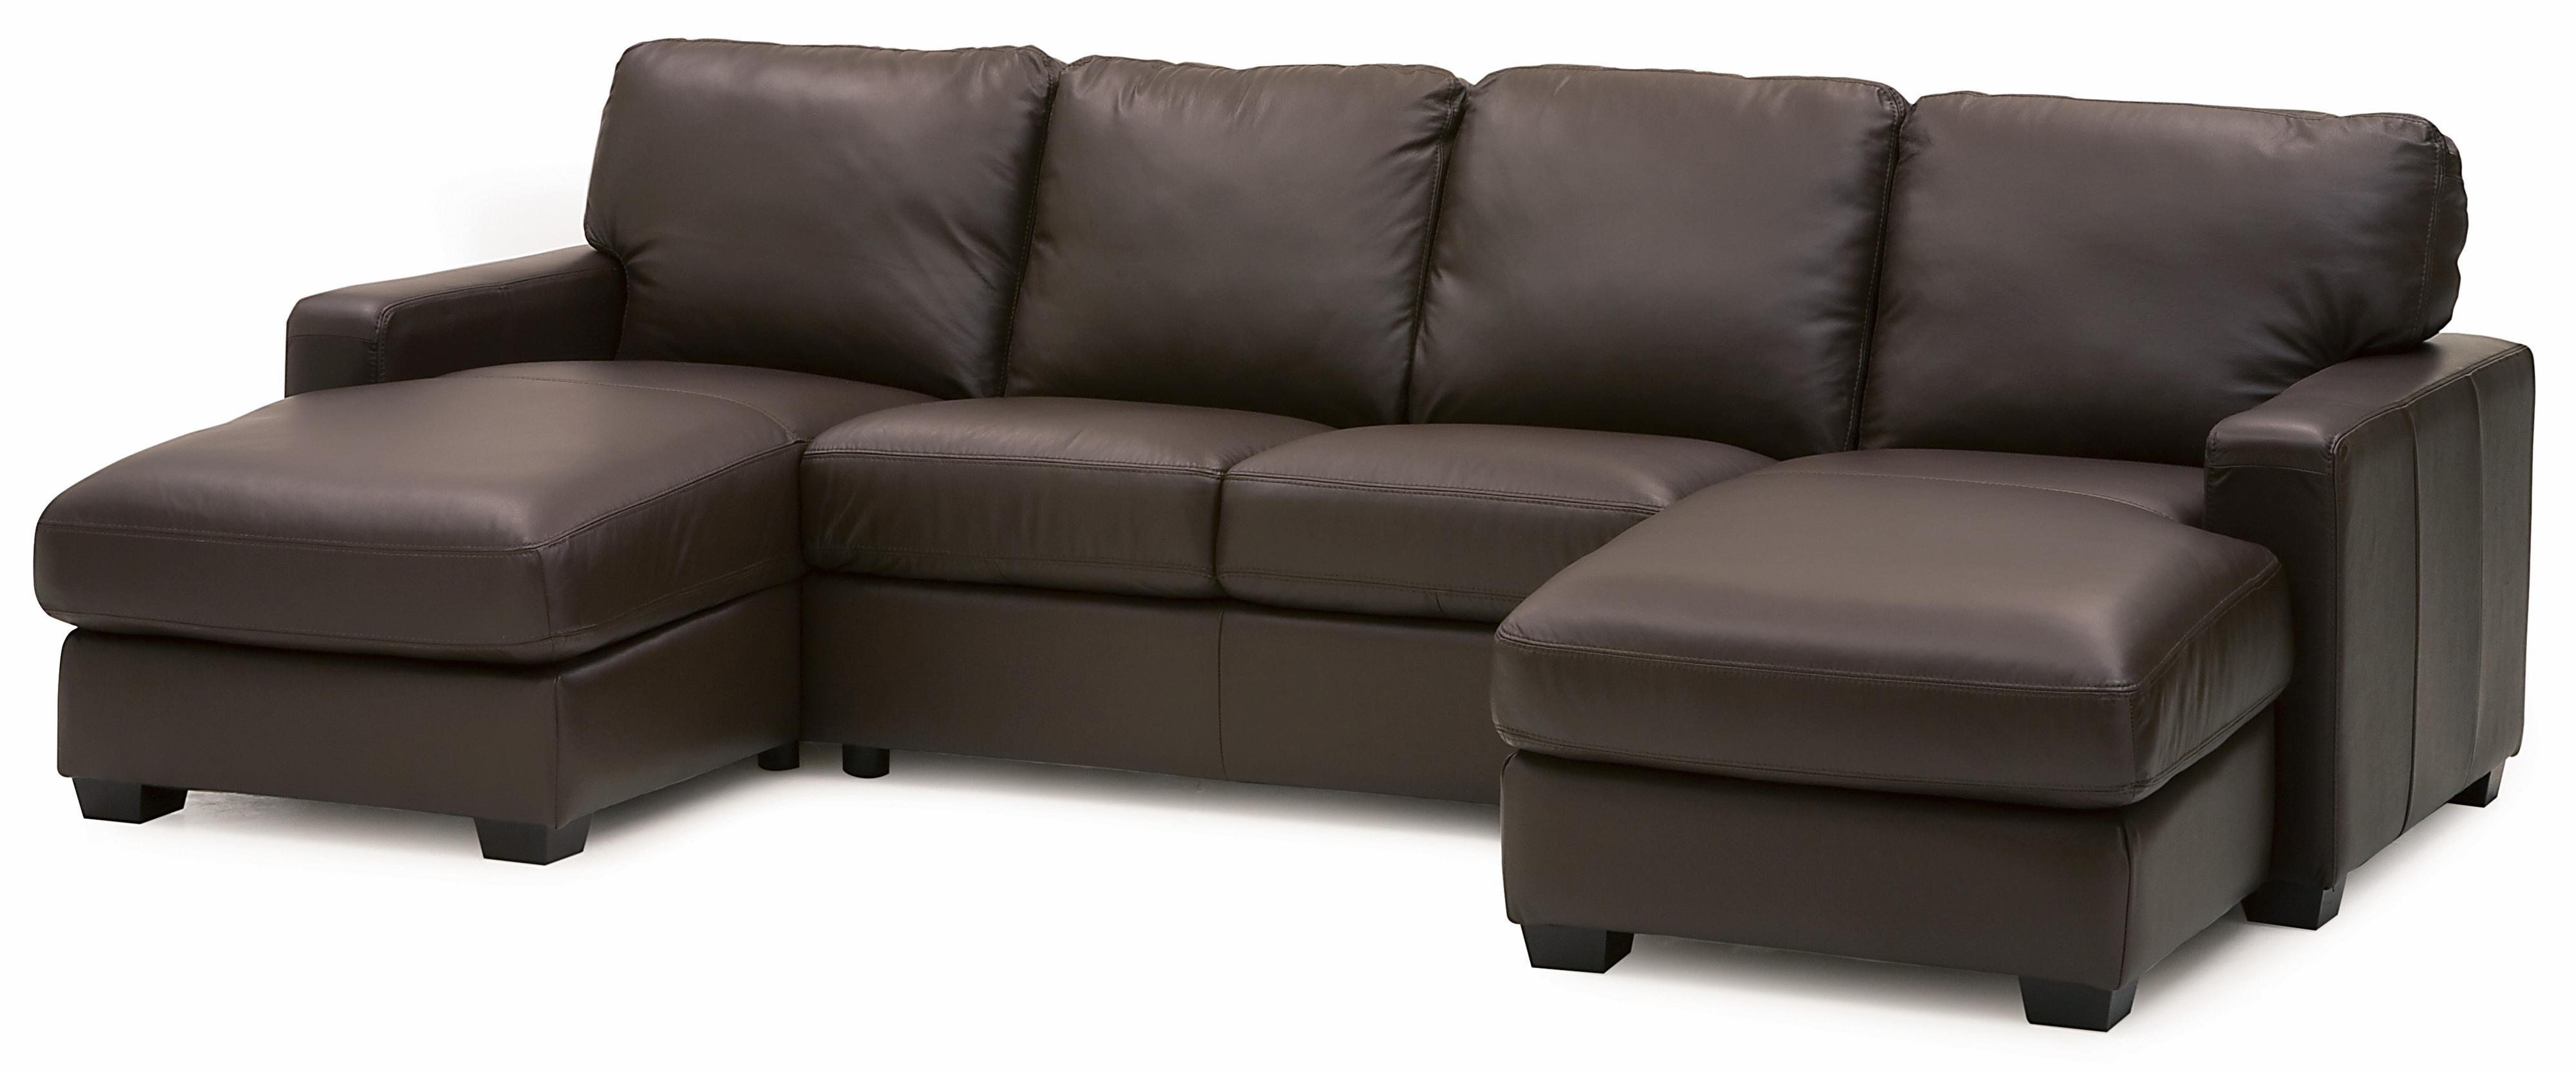 Palliser westend contemporary 3 pc sectional with rhf and for 3 pc sectional sofa with chaise